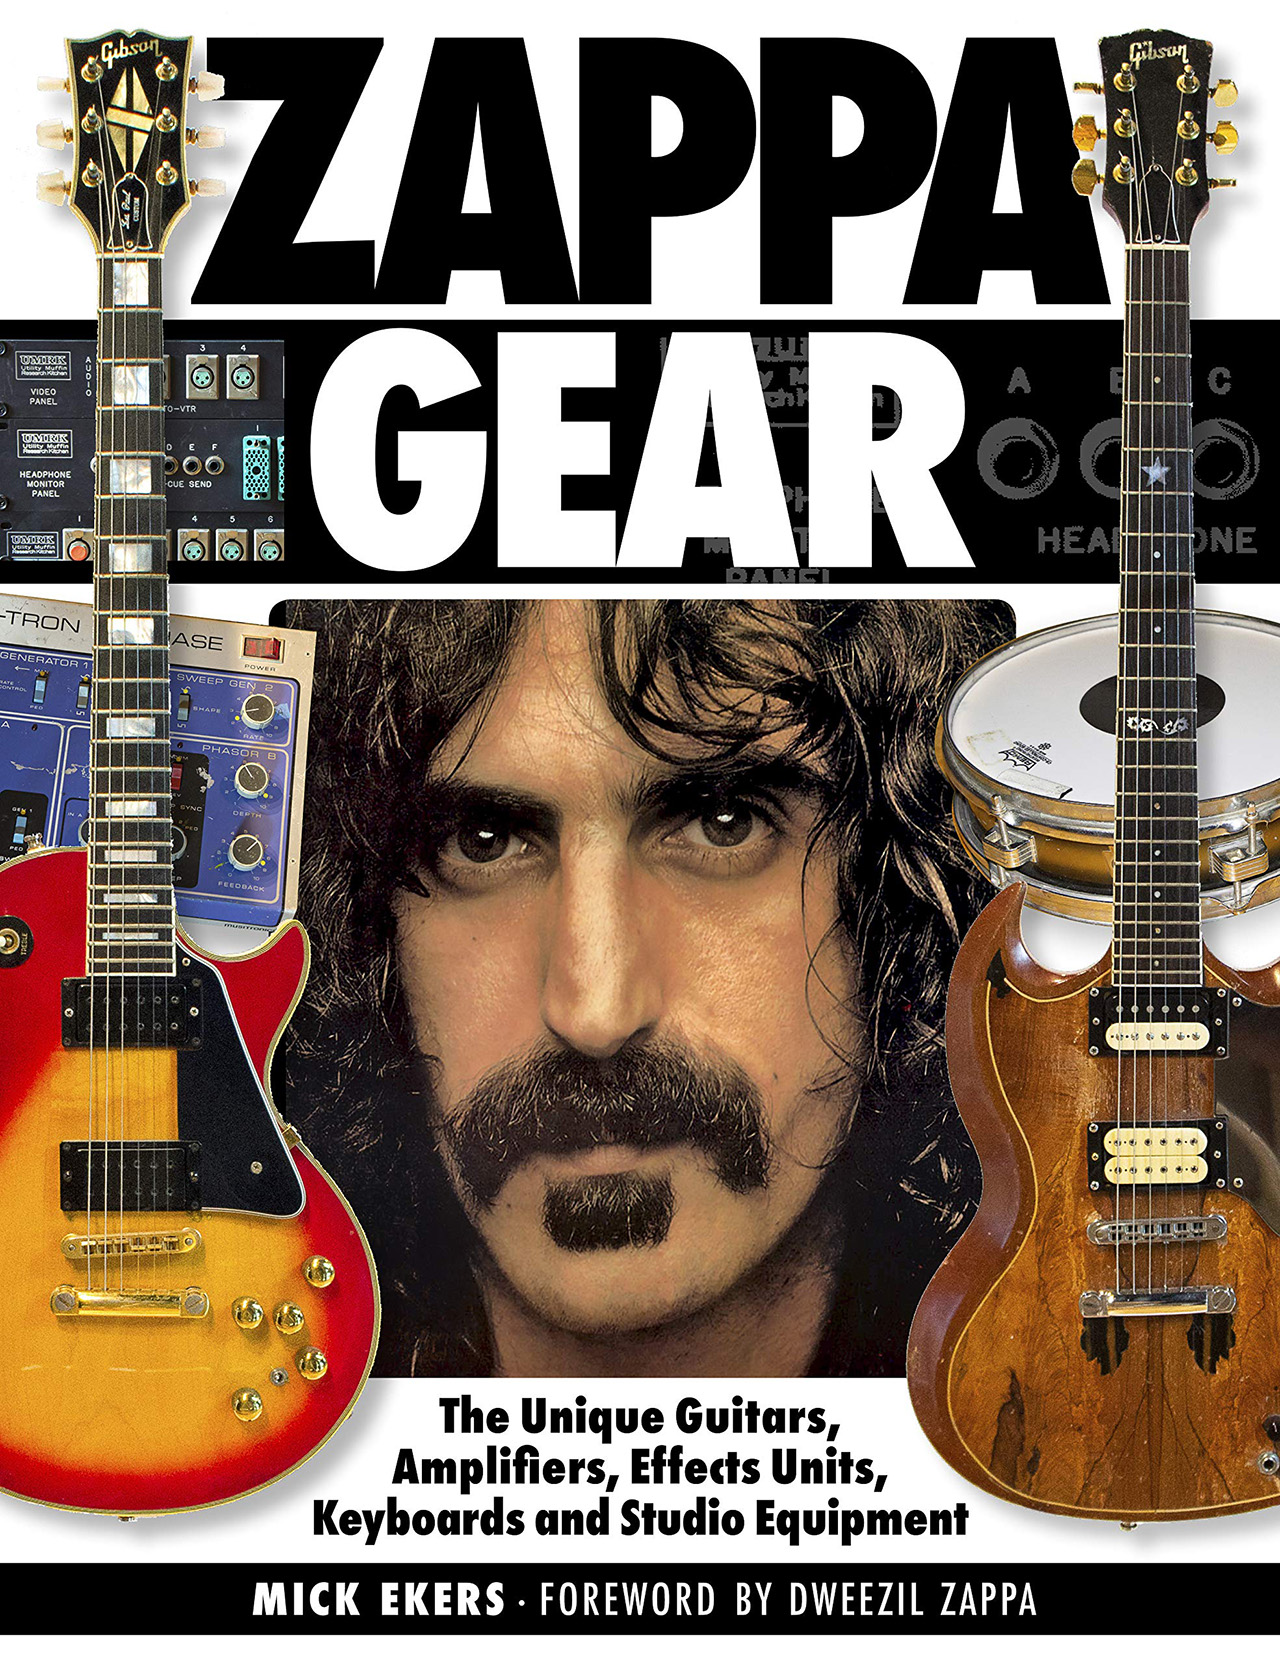 Pair of new Frank Zappa books to be published later this year | Louder